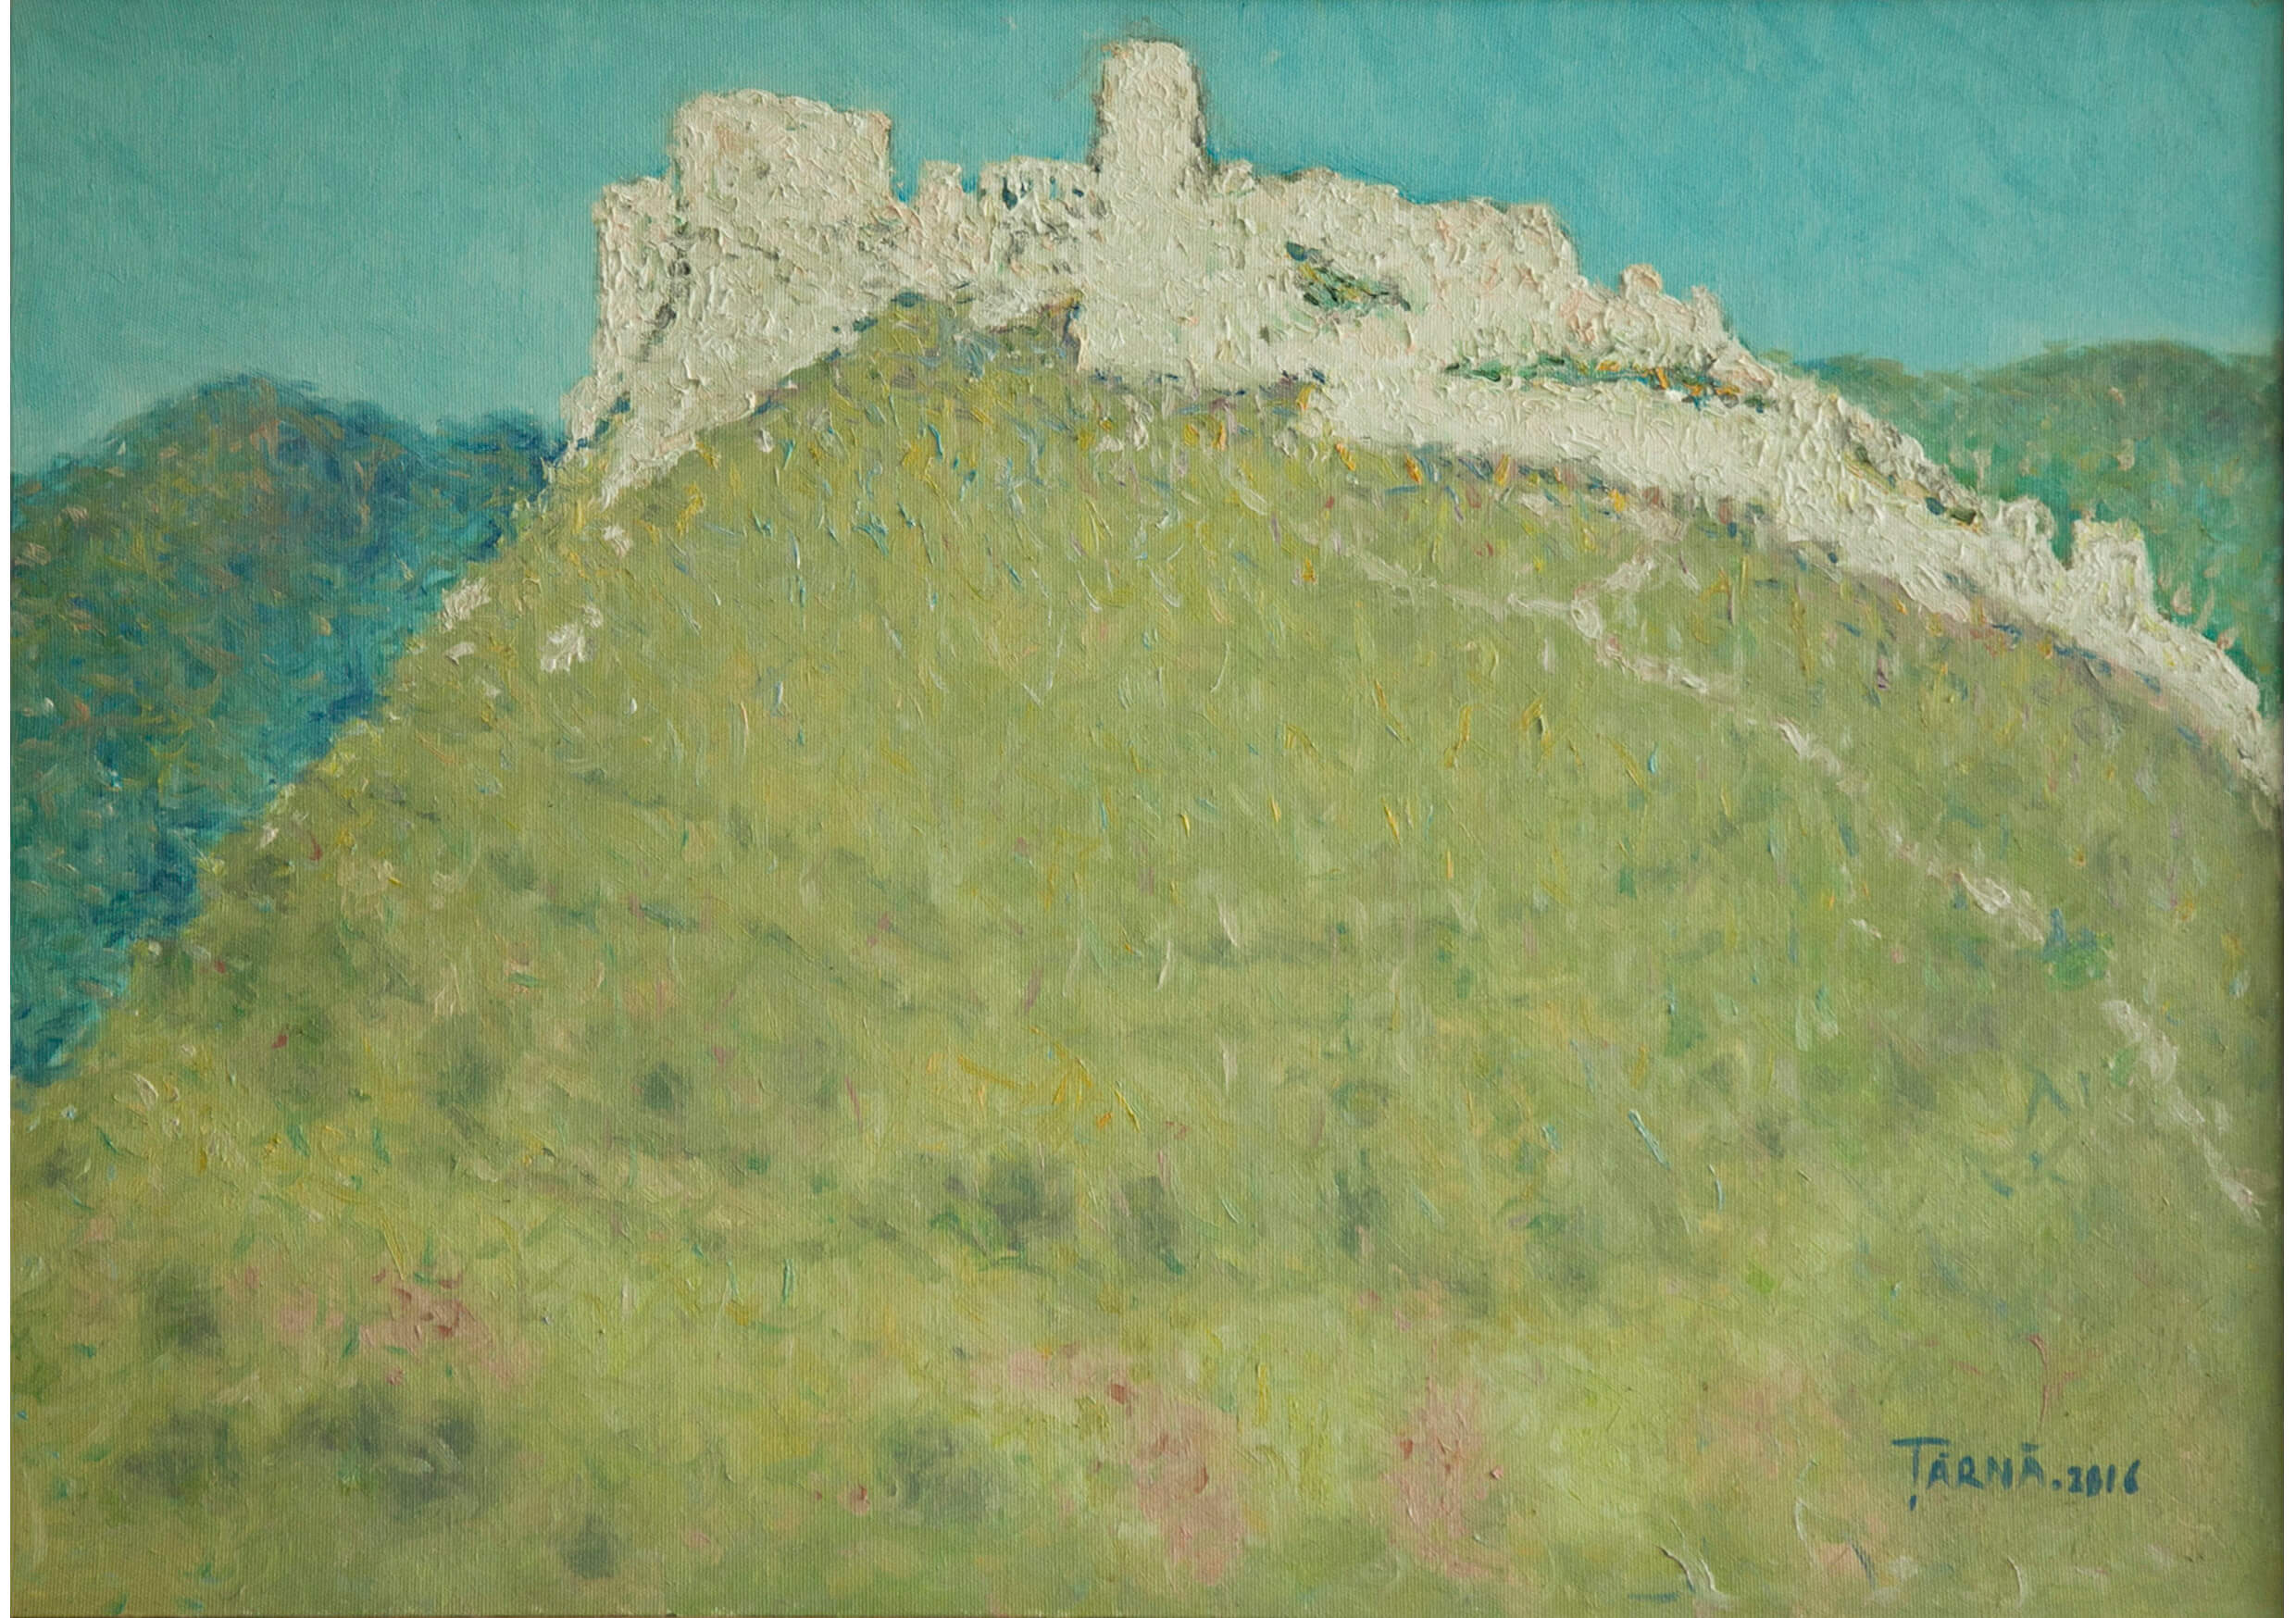 Spisska Hrad Slovakia, Oil on canvas, 50 x 70 cm